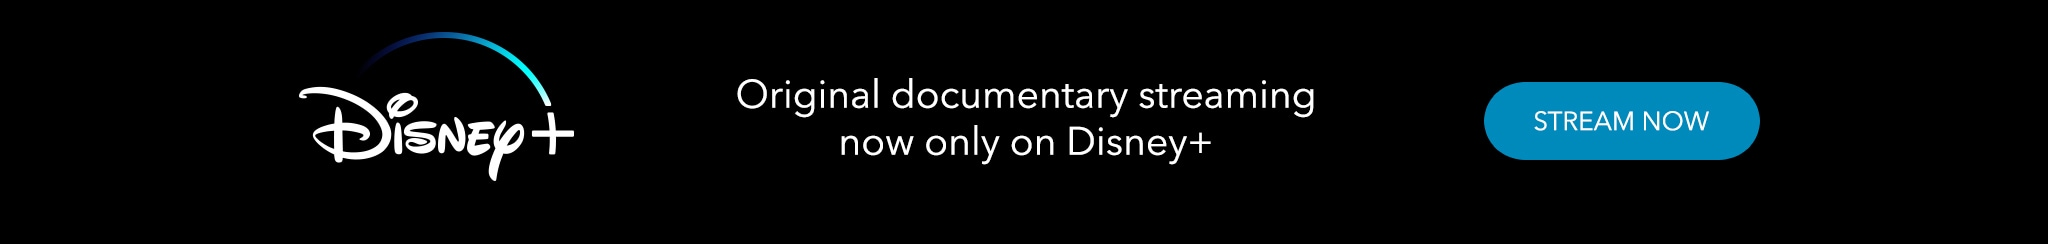 Original documentary streaming now only on Disney+. Stream now.